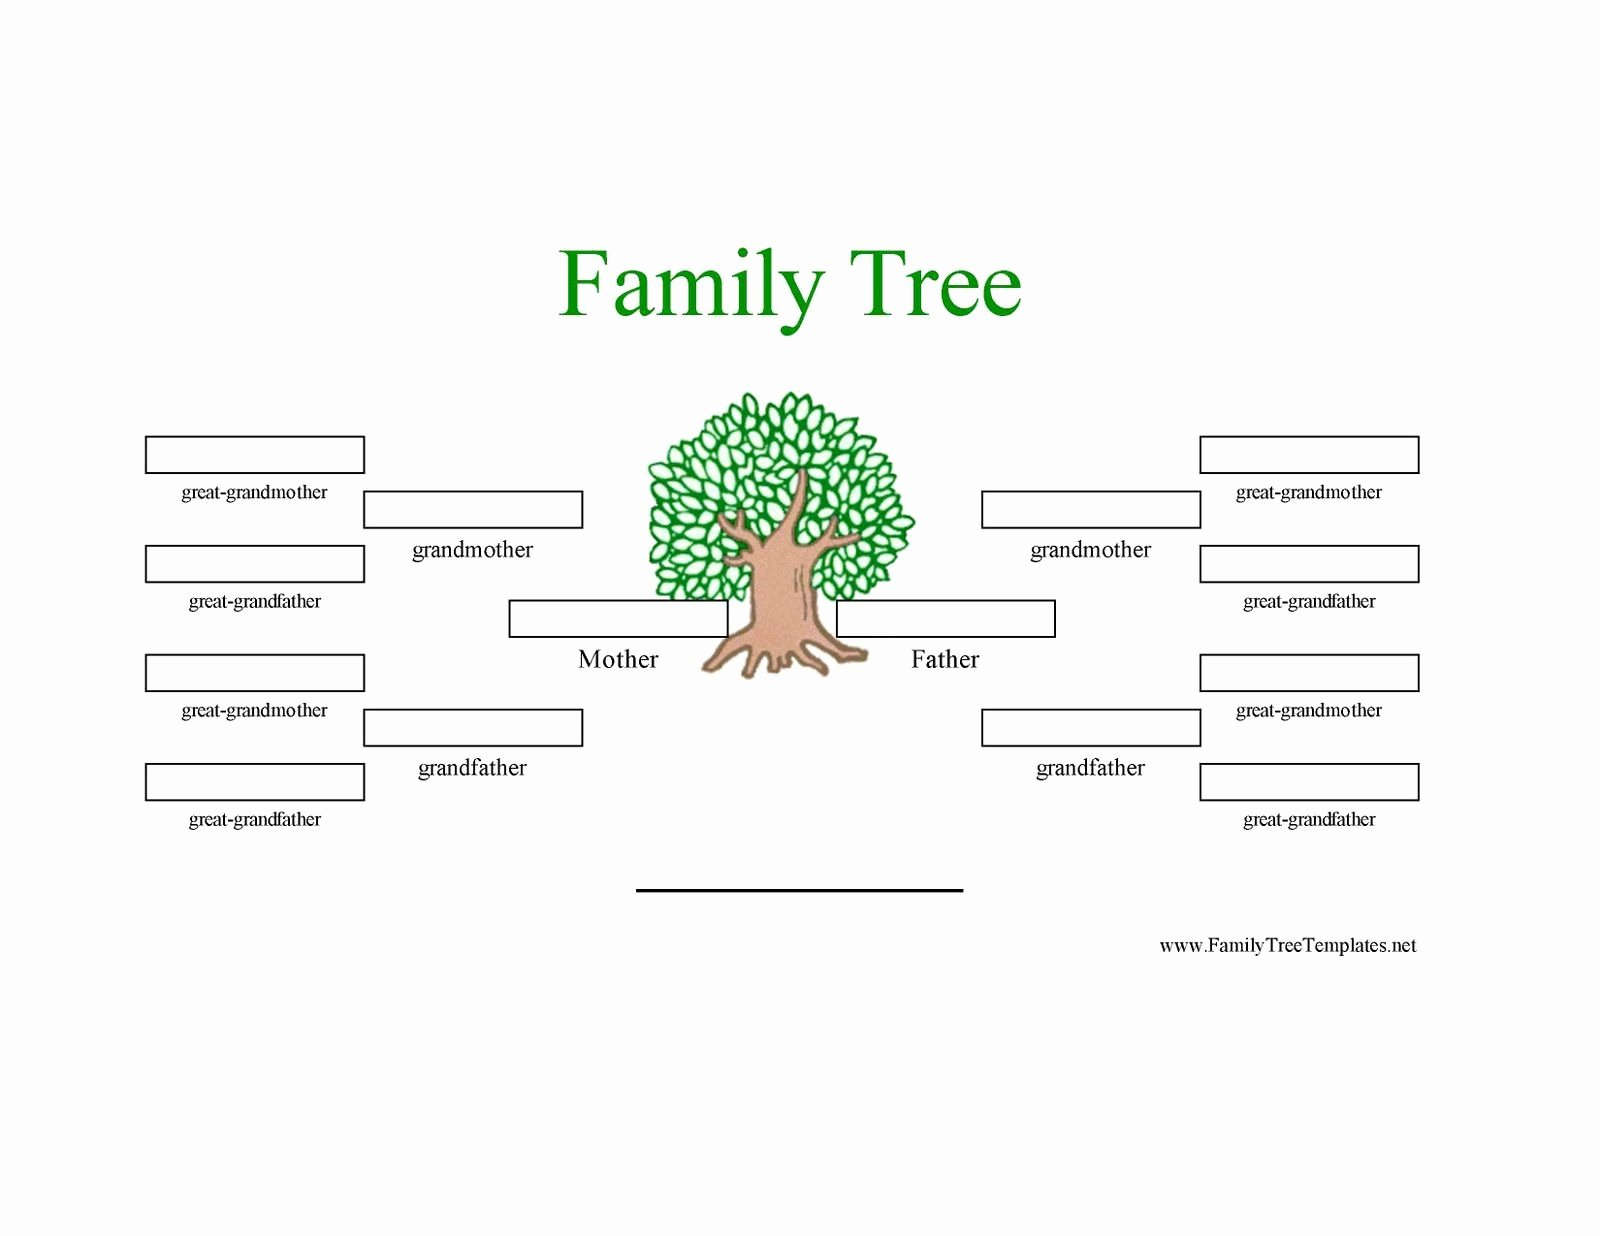 3 Generation Family Trees Inspirational 12 Generation Family Tree Sample Generations Family Tree Template Index Of